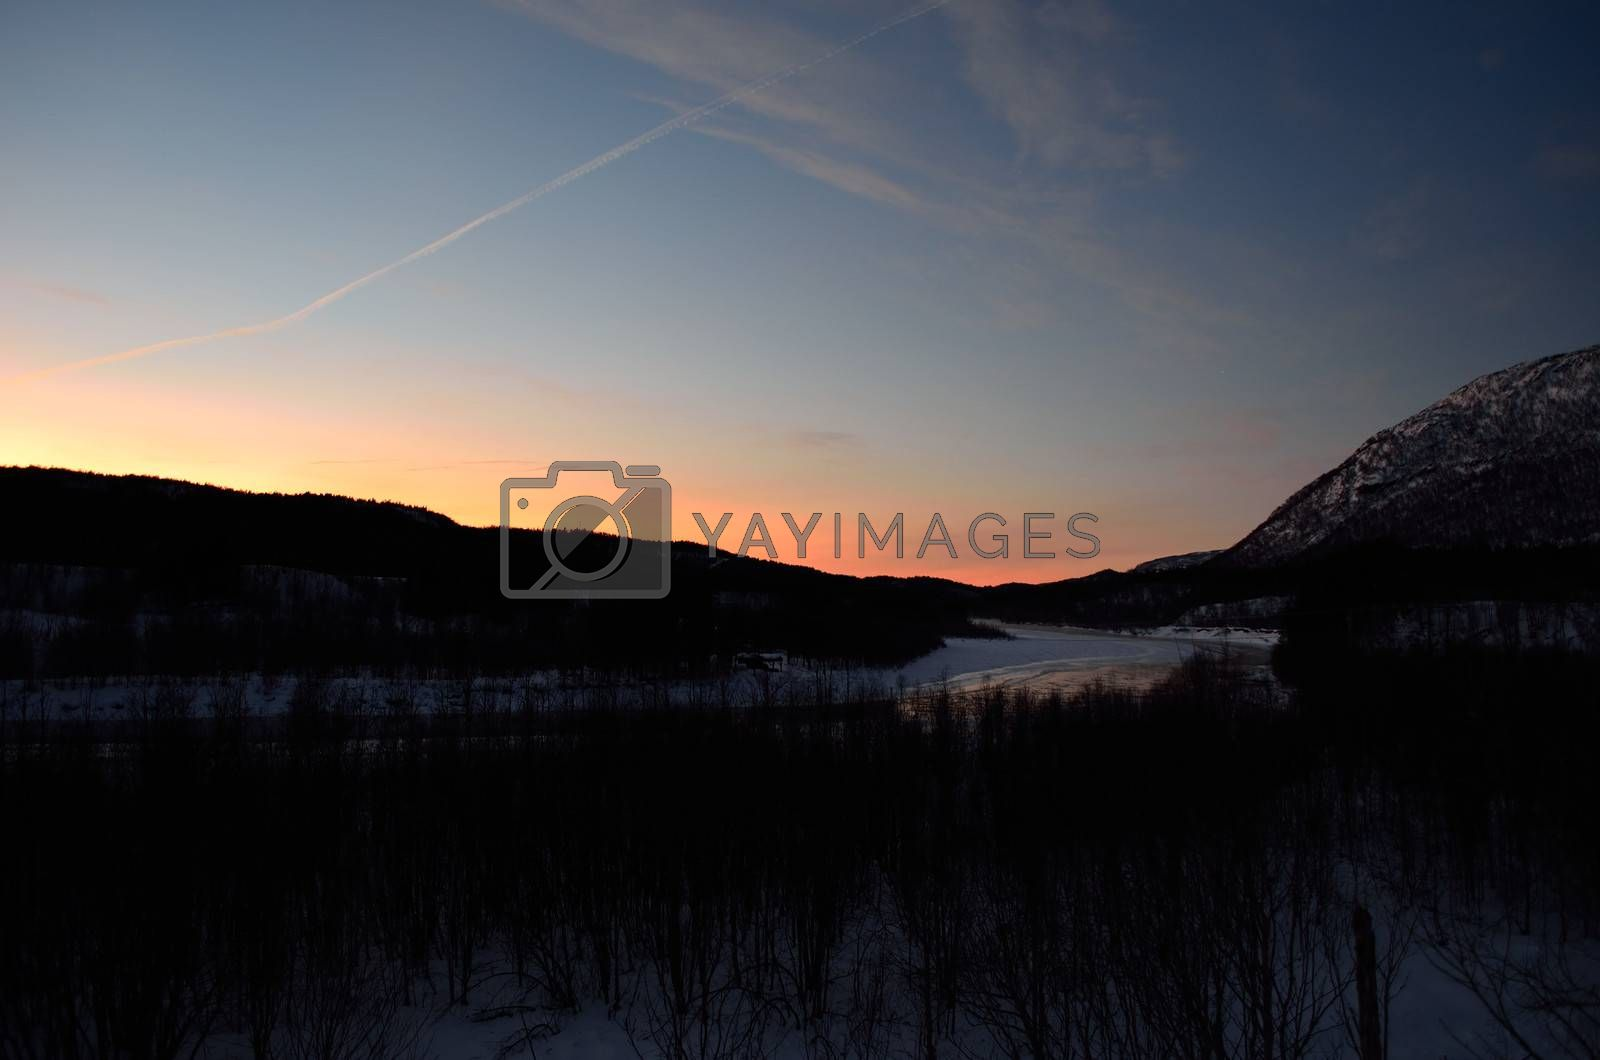 Royalty free image of vibrant sunset sky over mountain forest and icy river in winter by Finephotoworks